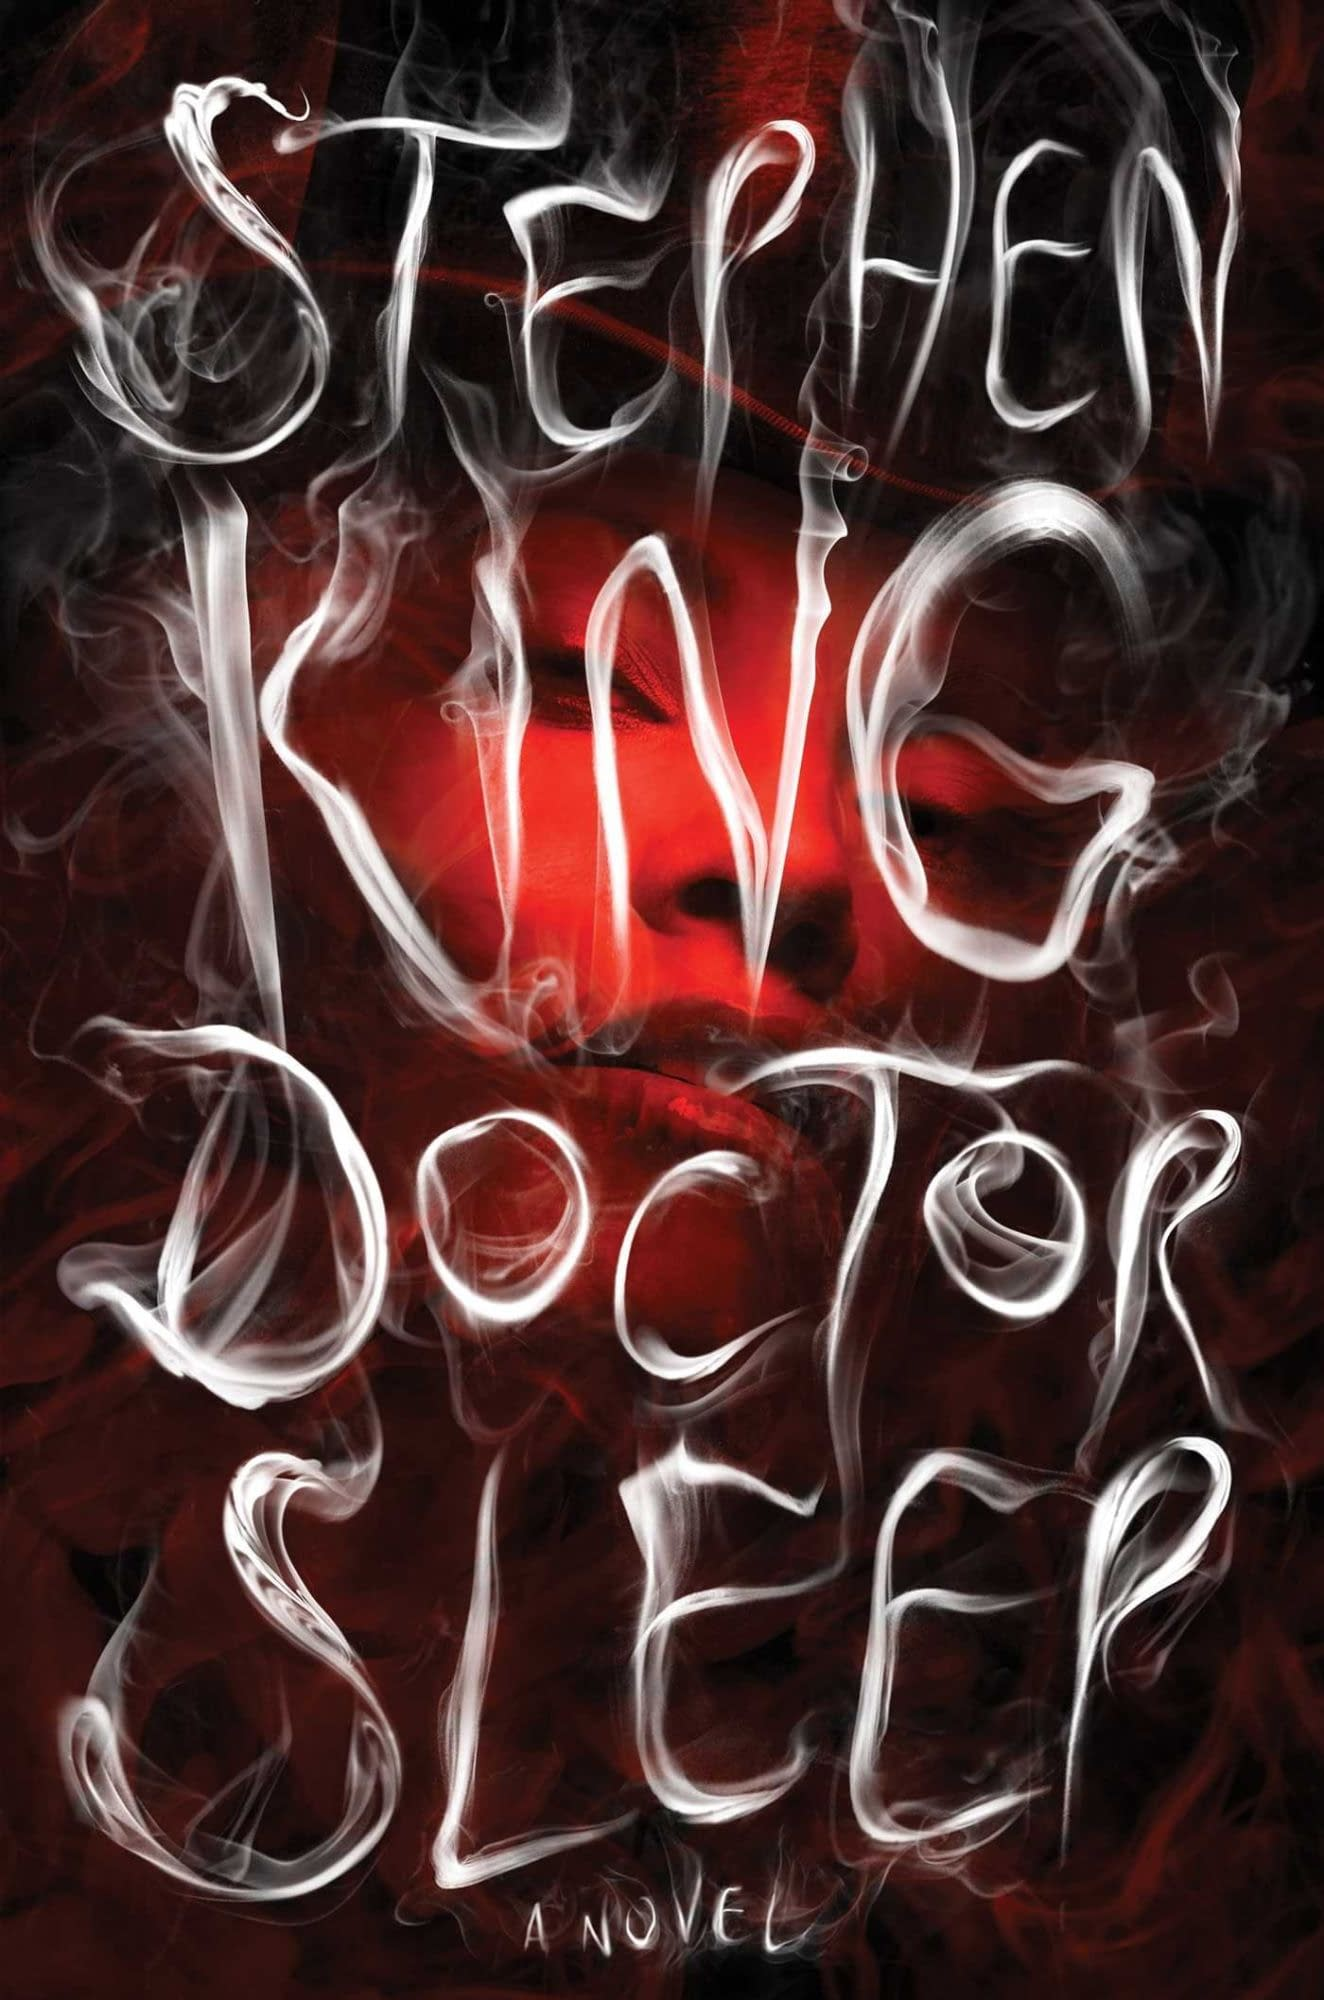 The Shining Sequel 'Doctor Sleep' Casts Carl Lumbly and Alex Essoe